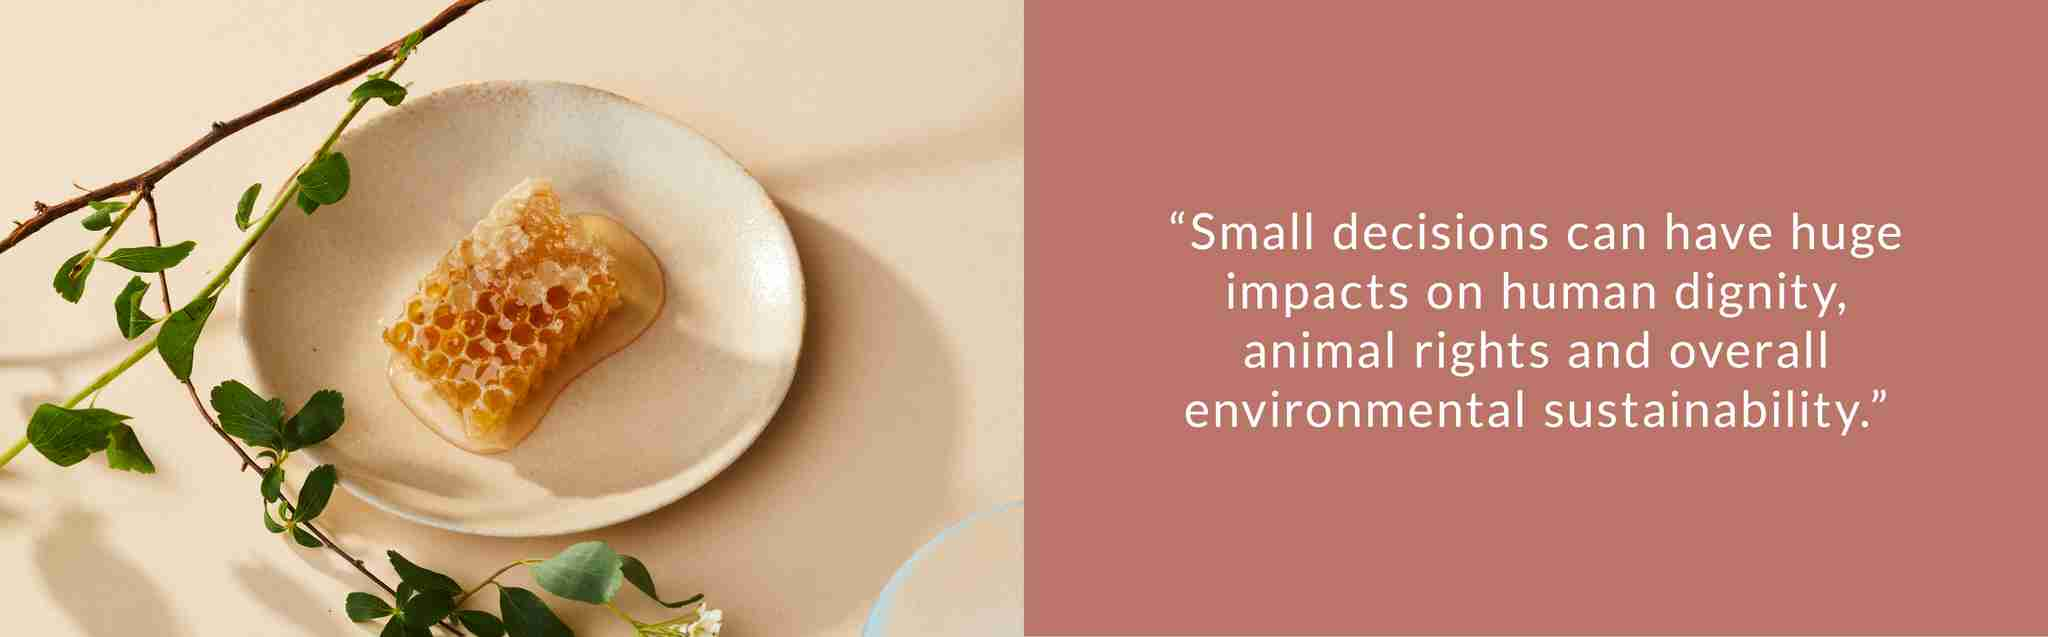 small decisions can have huge impacts on human dignity, animal rights and overall environmental sustainability